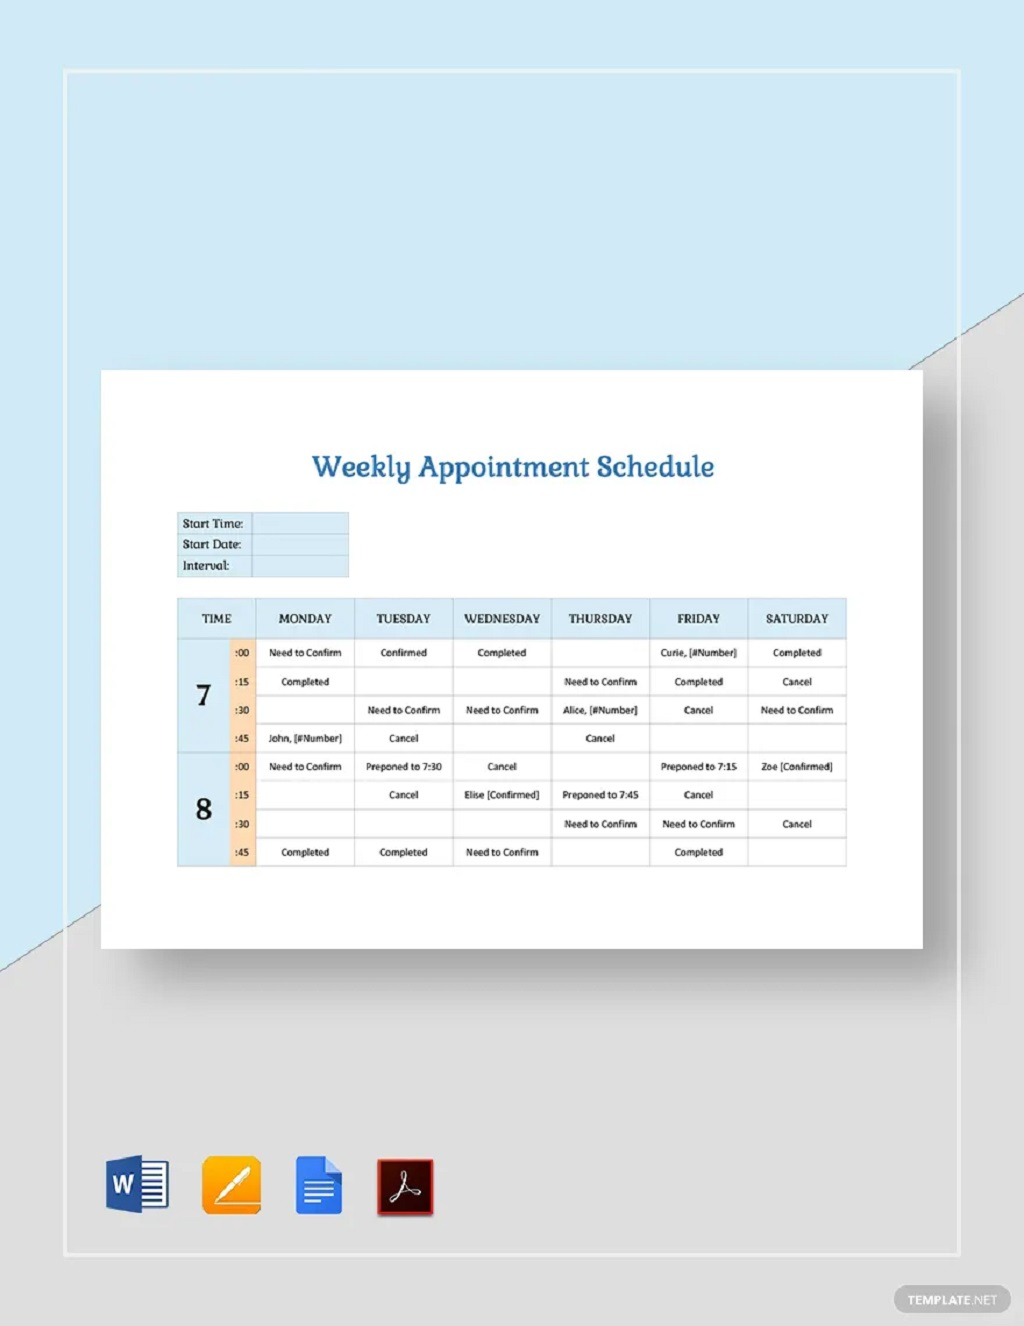 Weekly Appointment Schedule Template Sample Planner Printable Google Sheets Searches Related To Excel  Samples Large